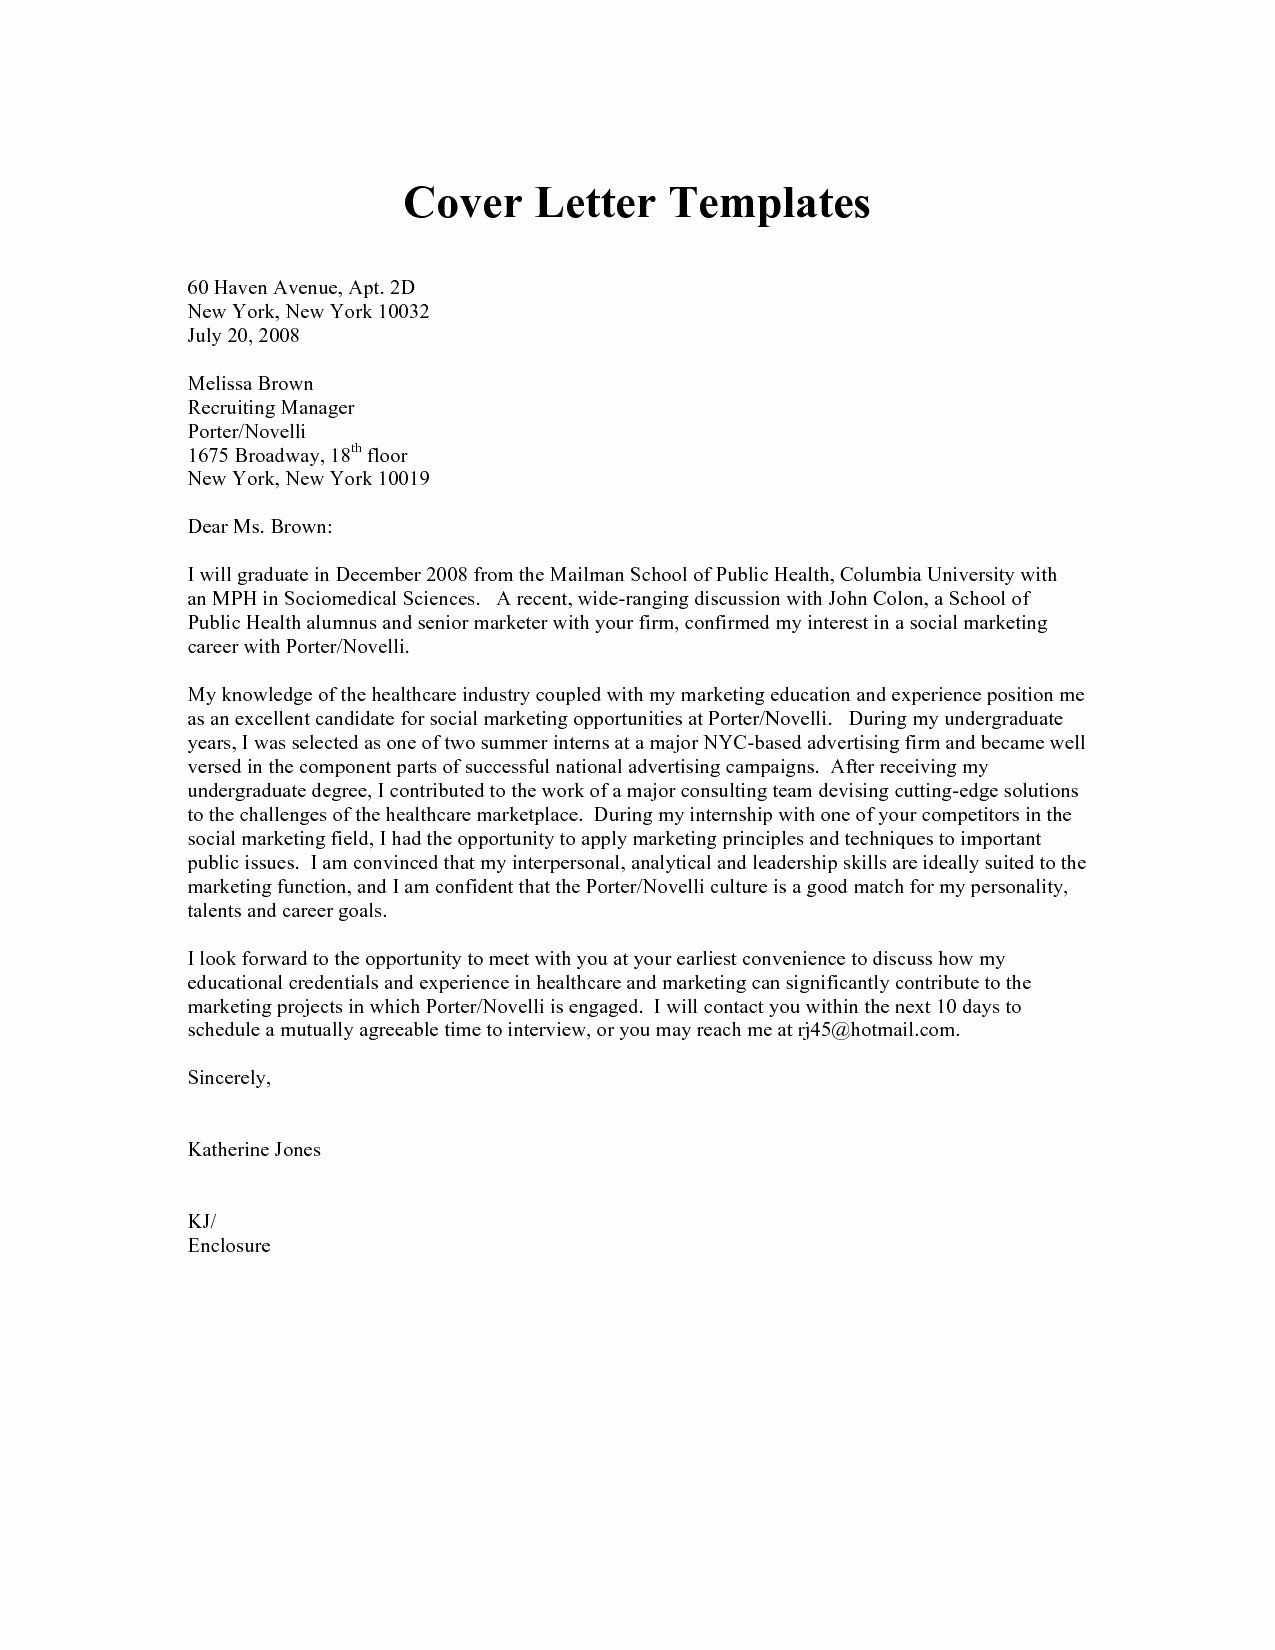 cover letter template healthcare healthcare cover letter examples inspirational higher education